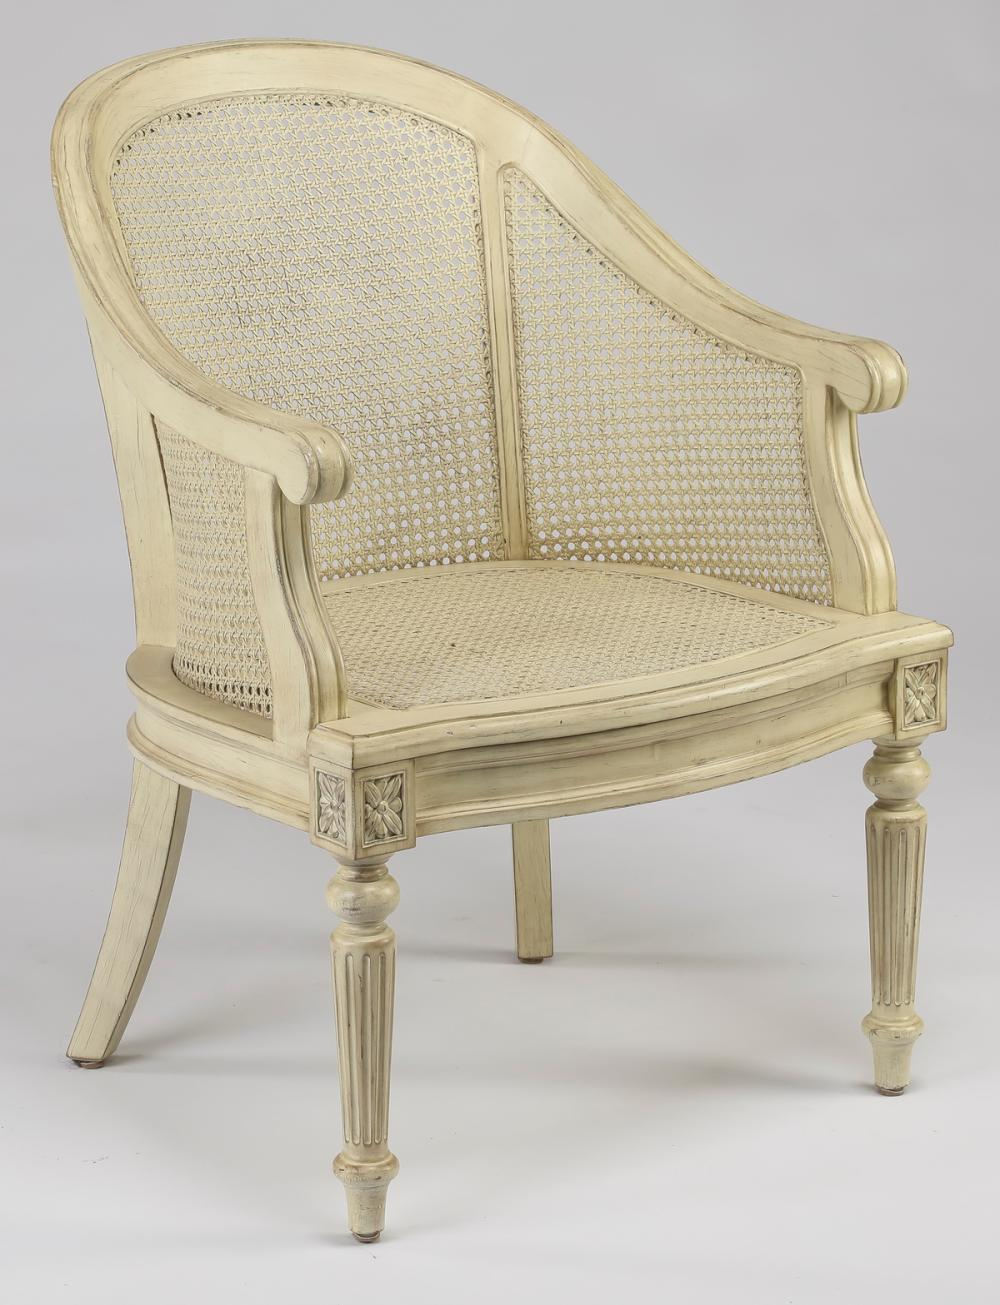 French Provincial style caned & painted tub chair